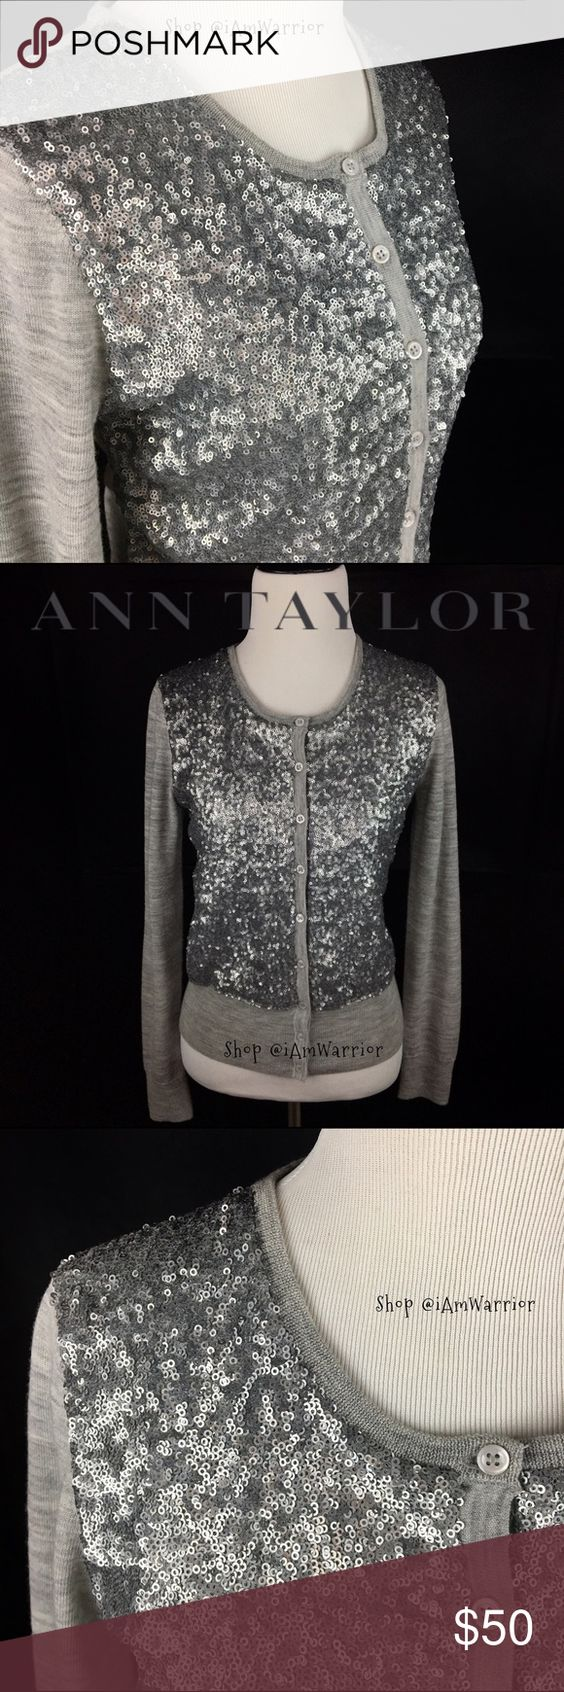 Ann Taylor gray cardigan with silver sequins Gorgeous Ann Taylor heather gray cardigan has tint circular sequins on the front with solid sleeves and back. Front button closure. Excellent condition. Pair this over a little black dress or with some skinny jeans. Ann Taylor Sweaters Cardigans